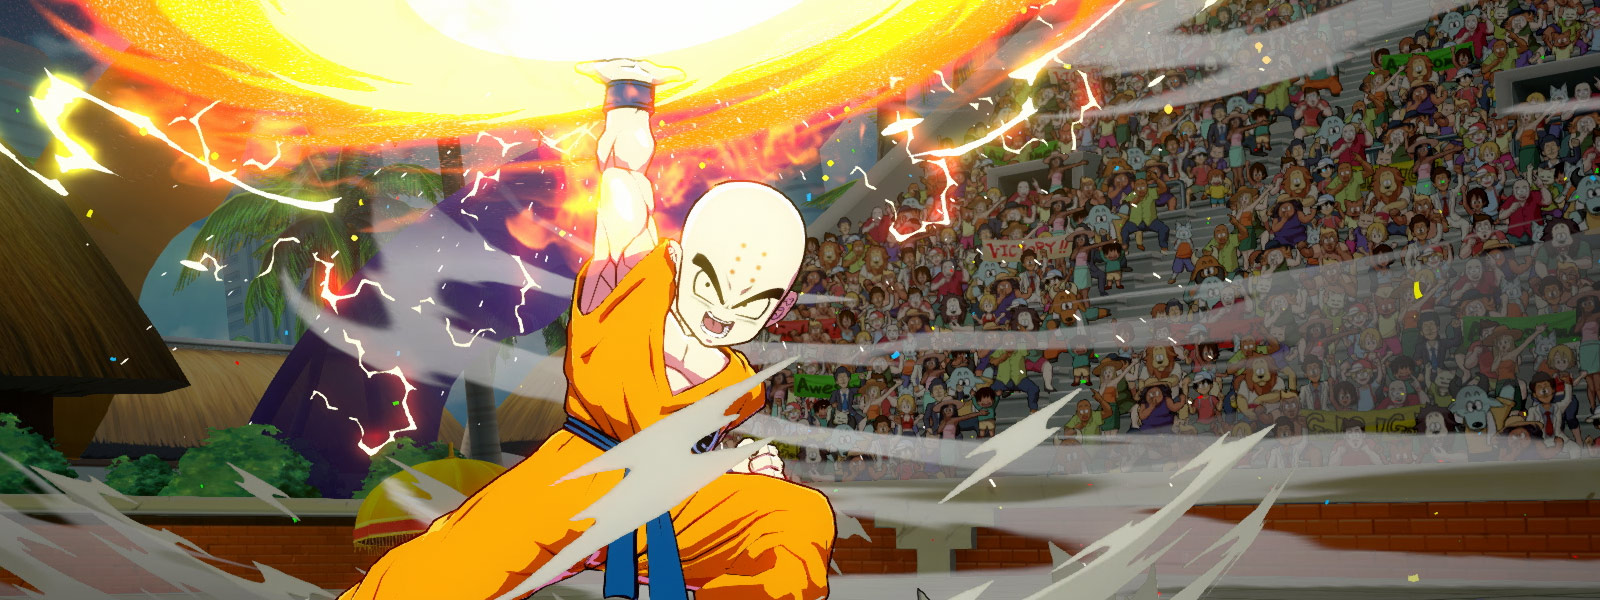 Krillin in a Fighting Pose charging a Destructo Disc